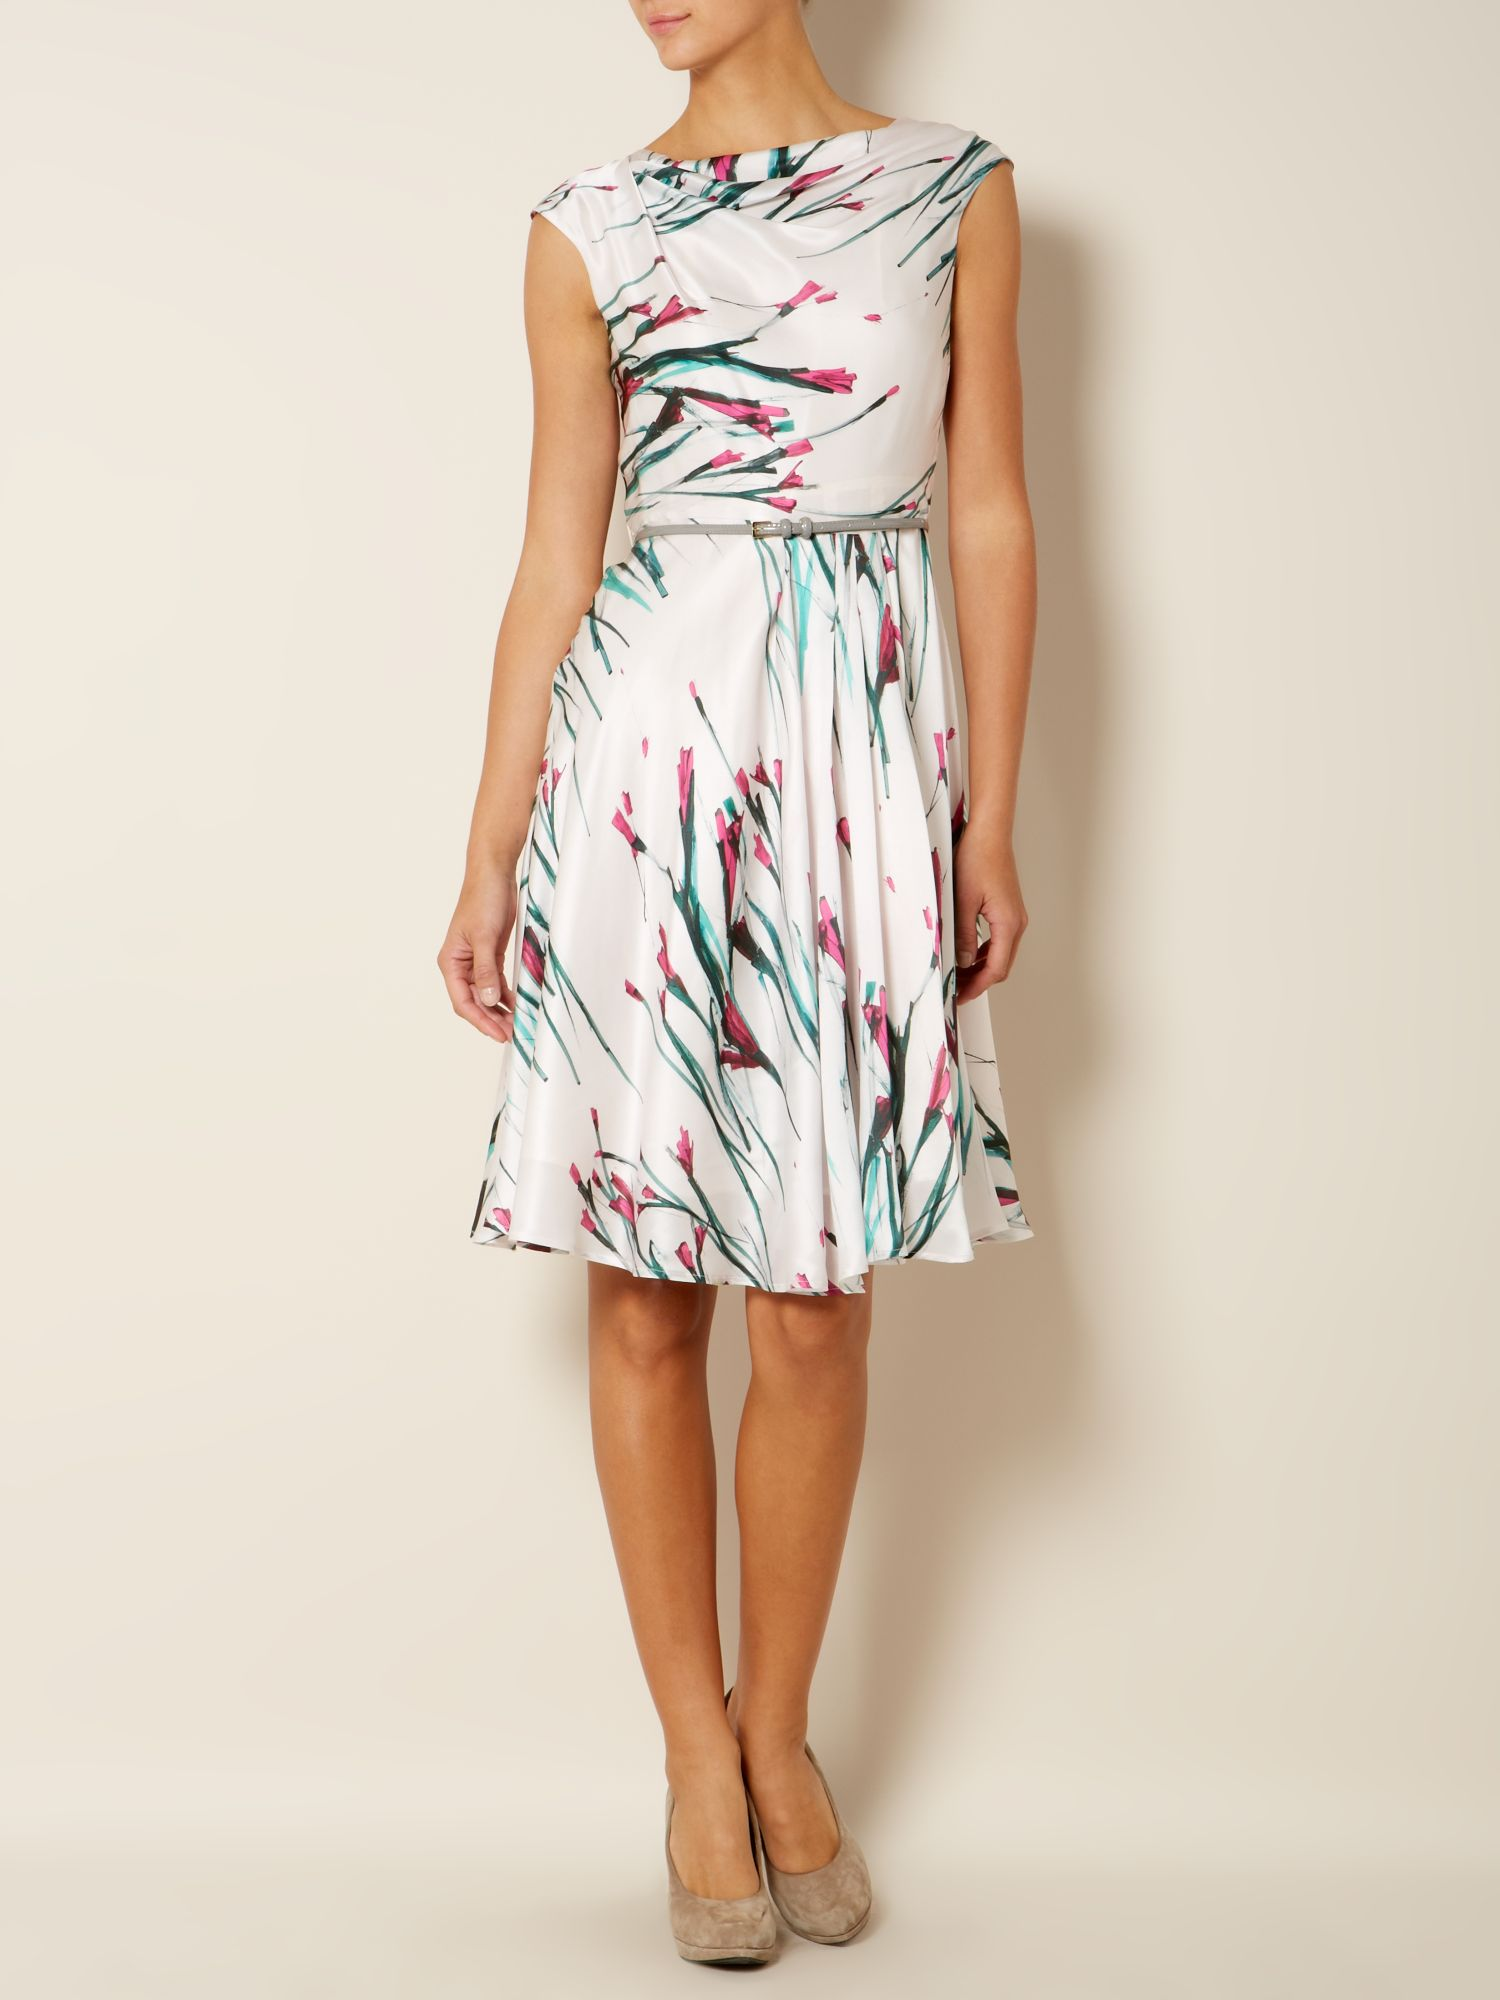 Berg silk floral dress with belt